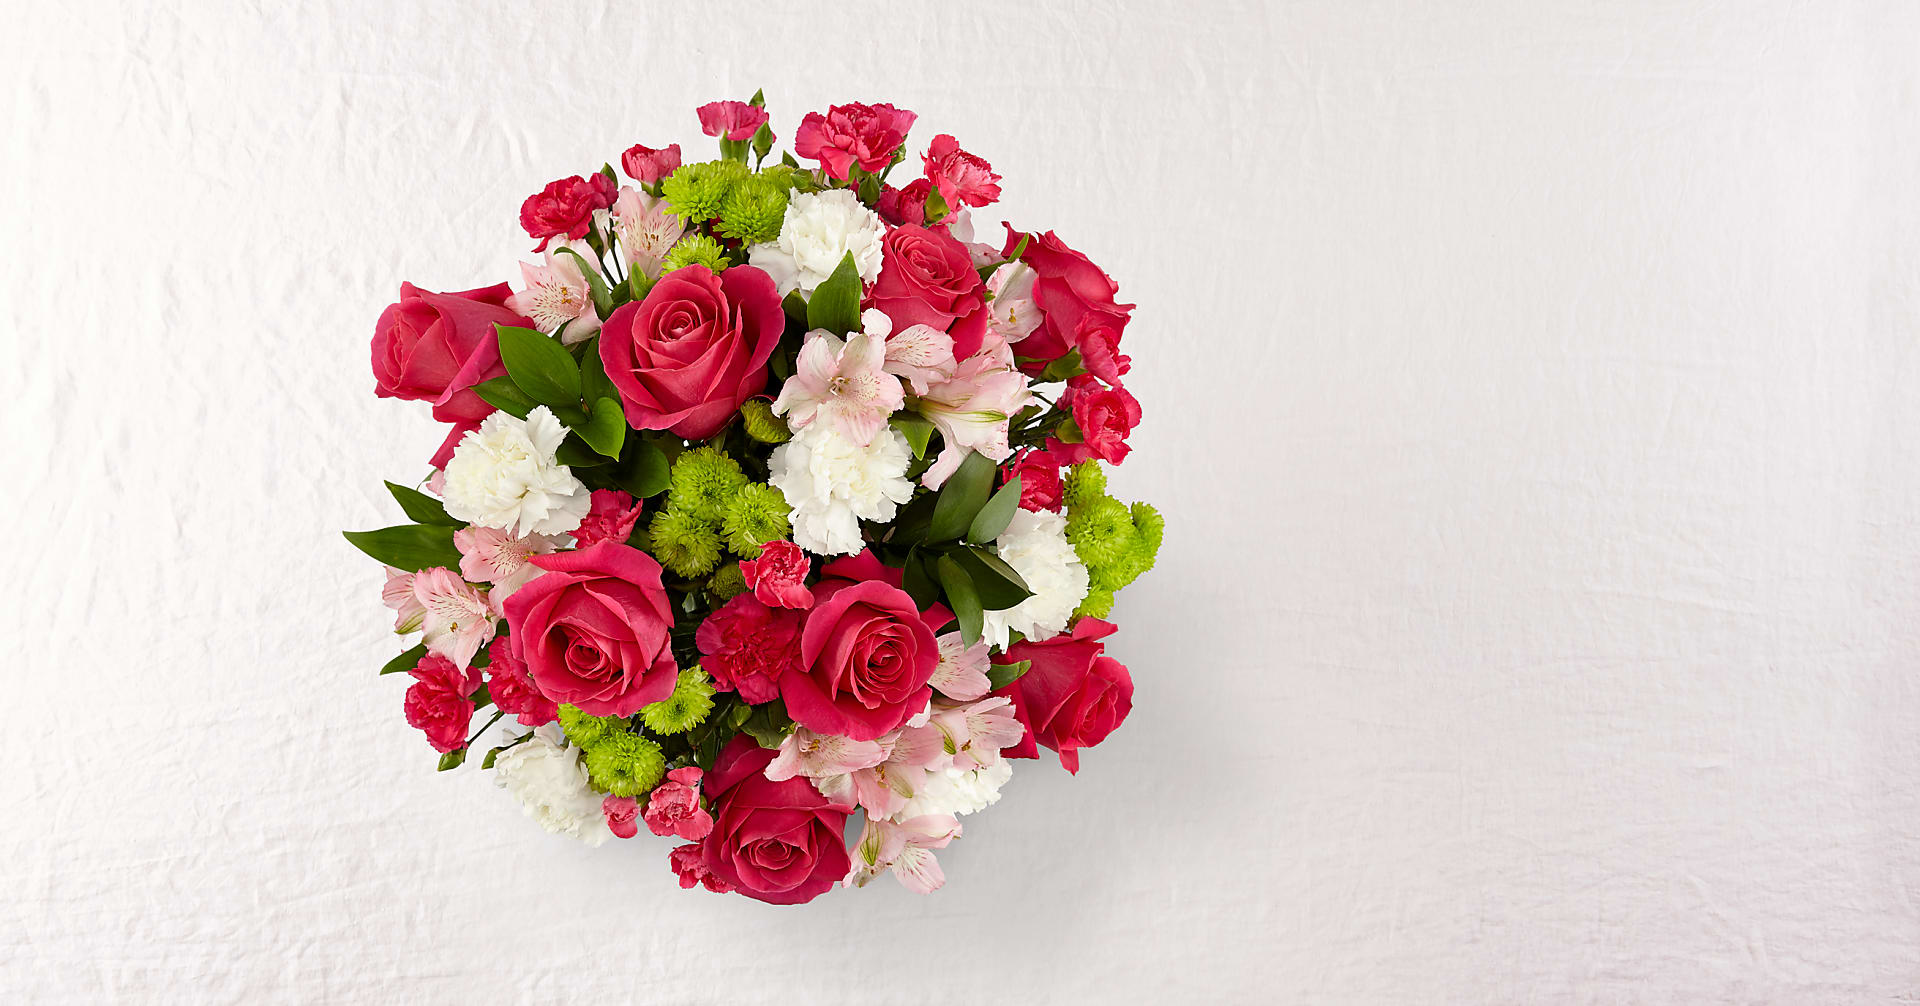 Sweet & Pretty™ Bouquet - Premium - Image 2 Of 4